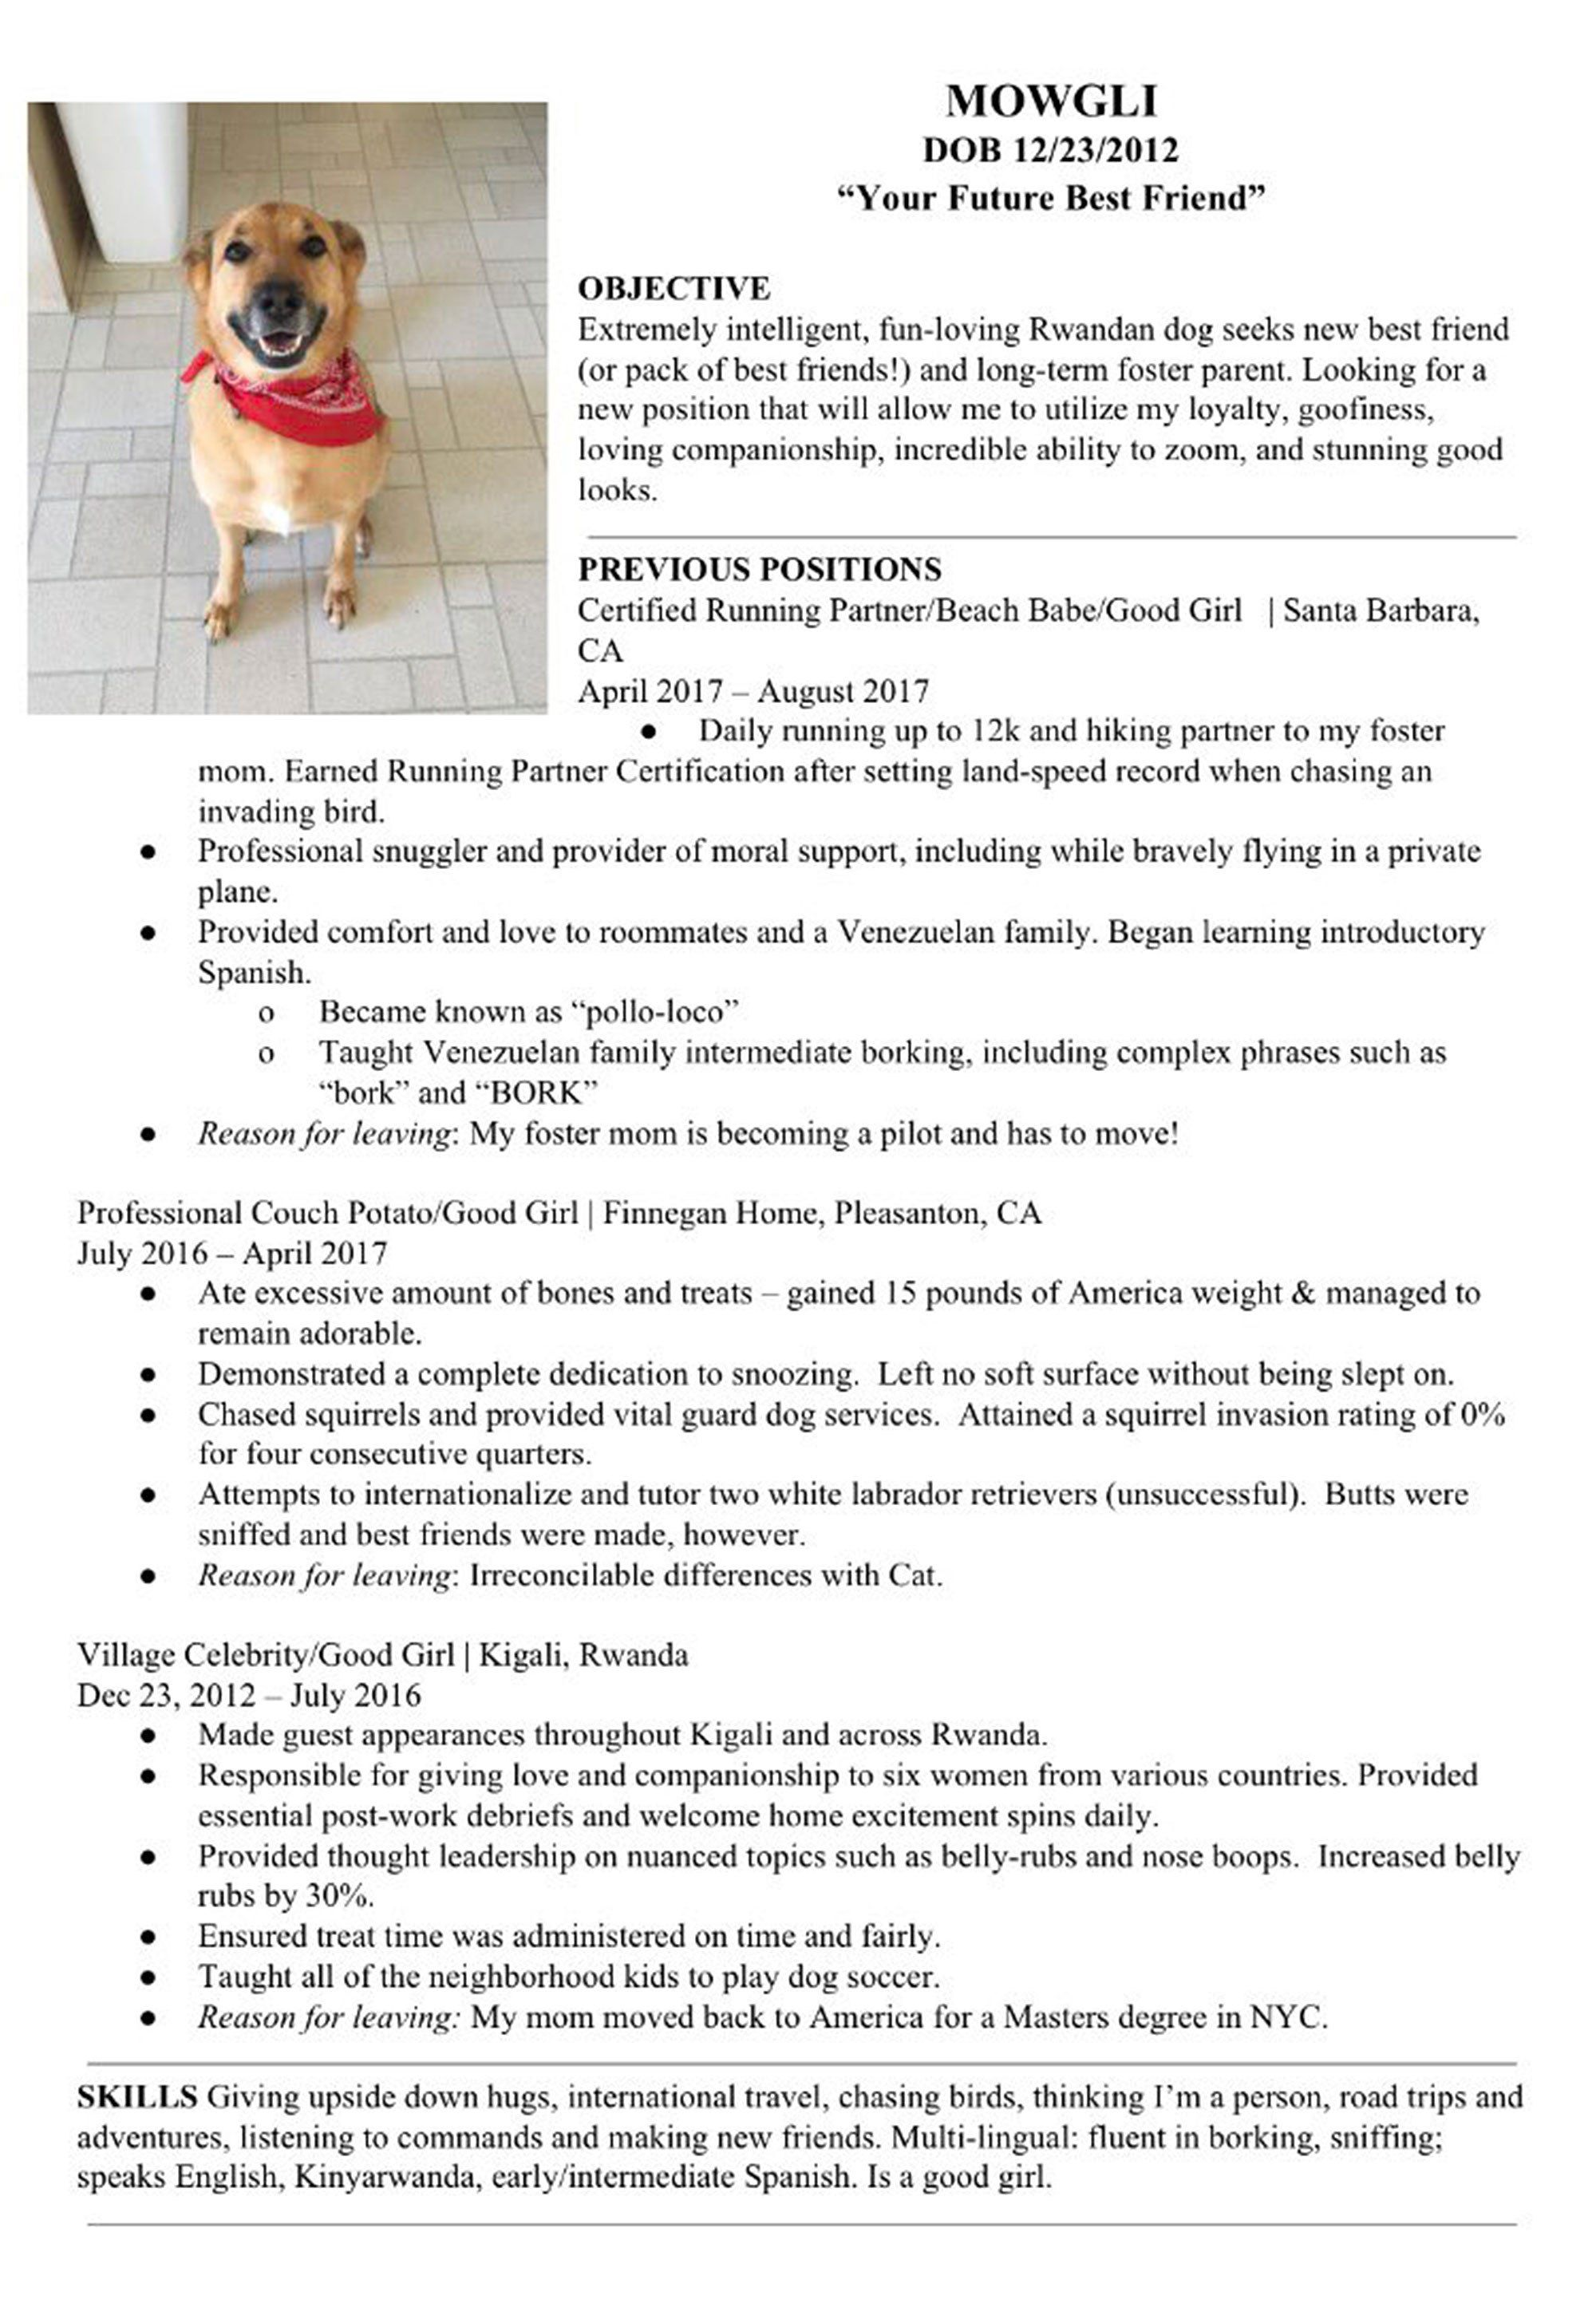 Man Creates Sweet Resume For Dog Mowgli Seeking A New Foster Family Foster Dog Animal Shelter Volunteer The Fosters